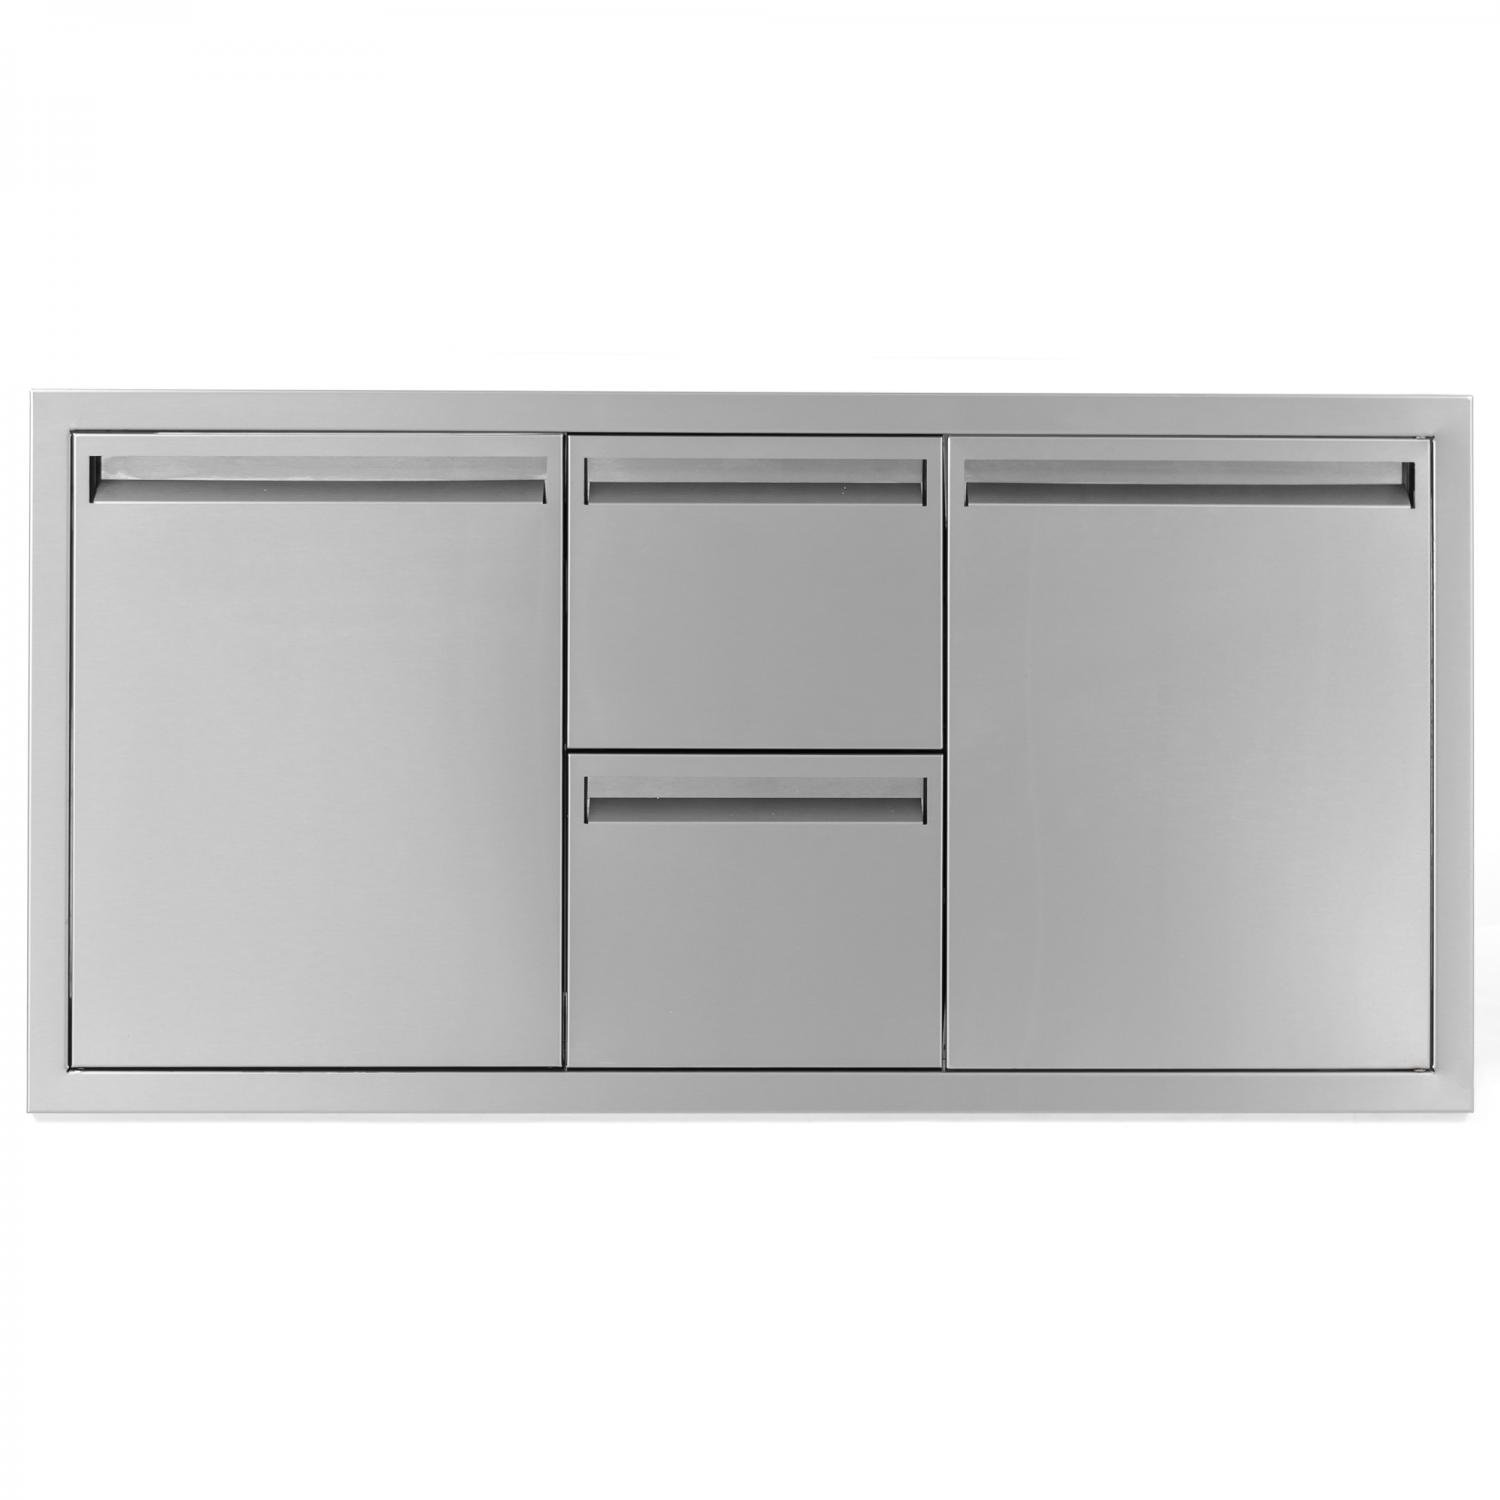 BBQGuys.com Aspen Series 42-inch Stainless Steel Door, Double Drawer & Roll-out Trash Bin Combo